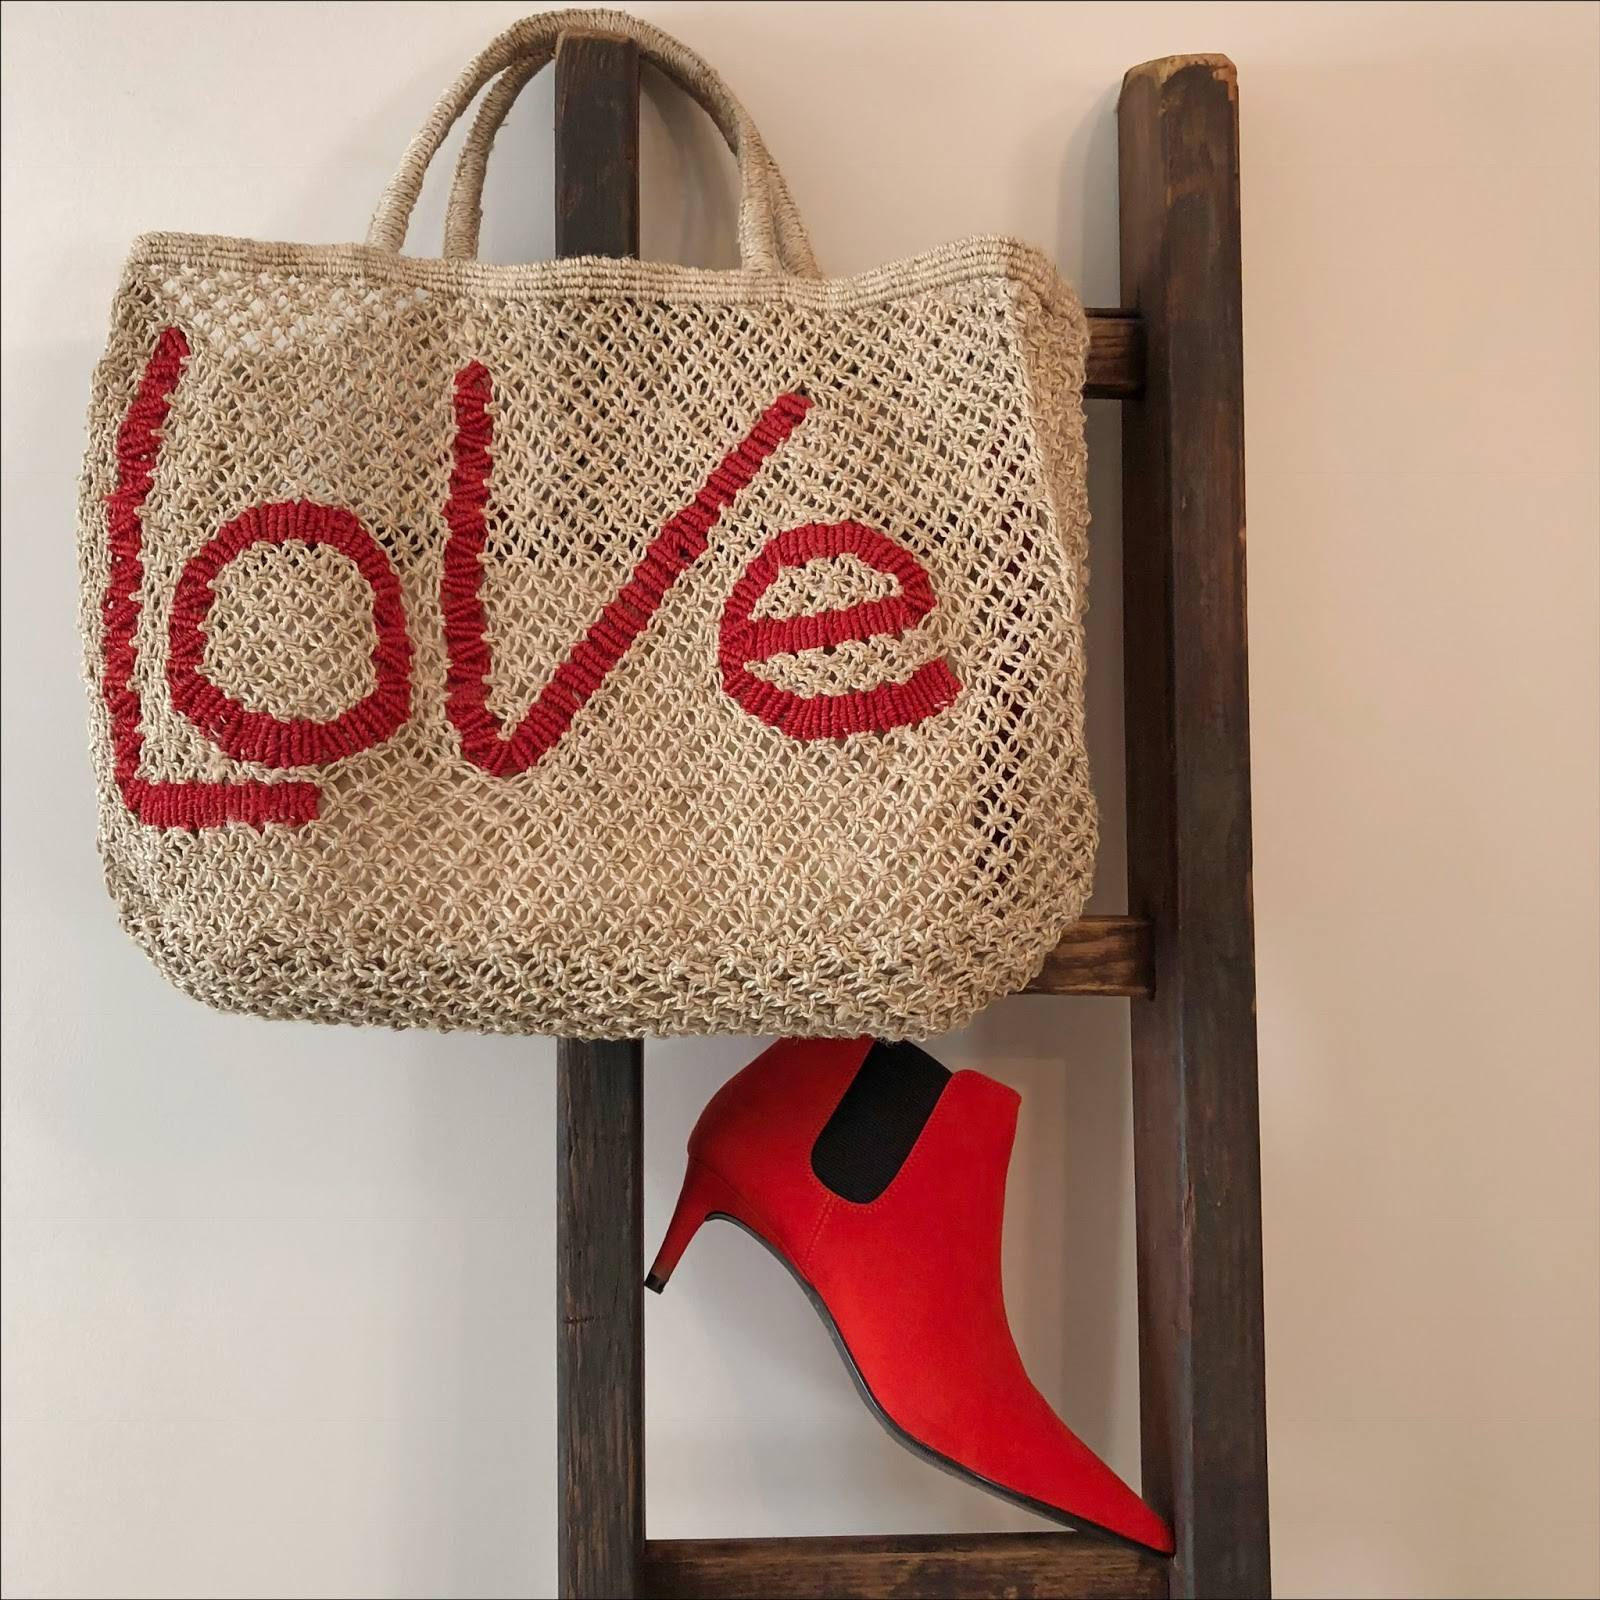 My midlife fashion, marks and spencer kitten heel pointed toe ankle boots, the jacksons jute love bag